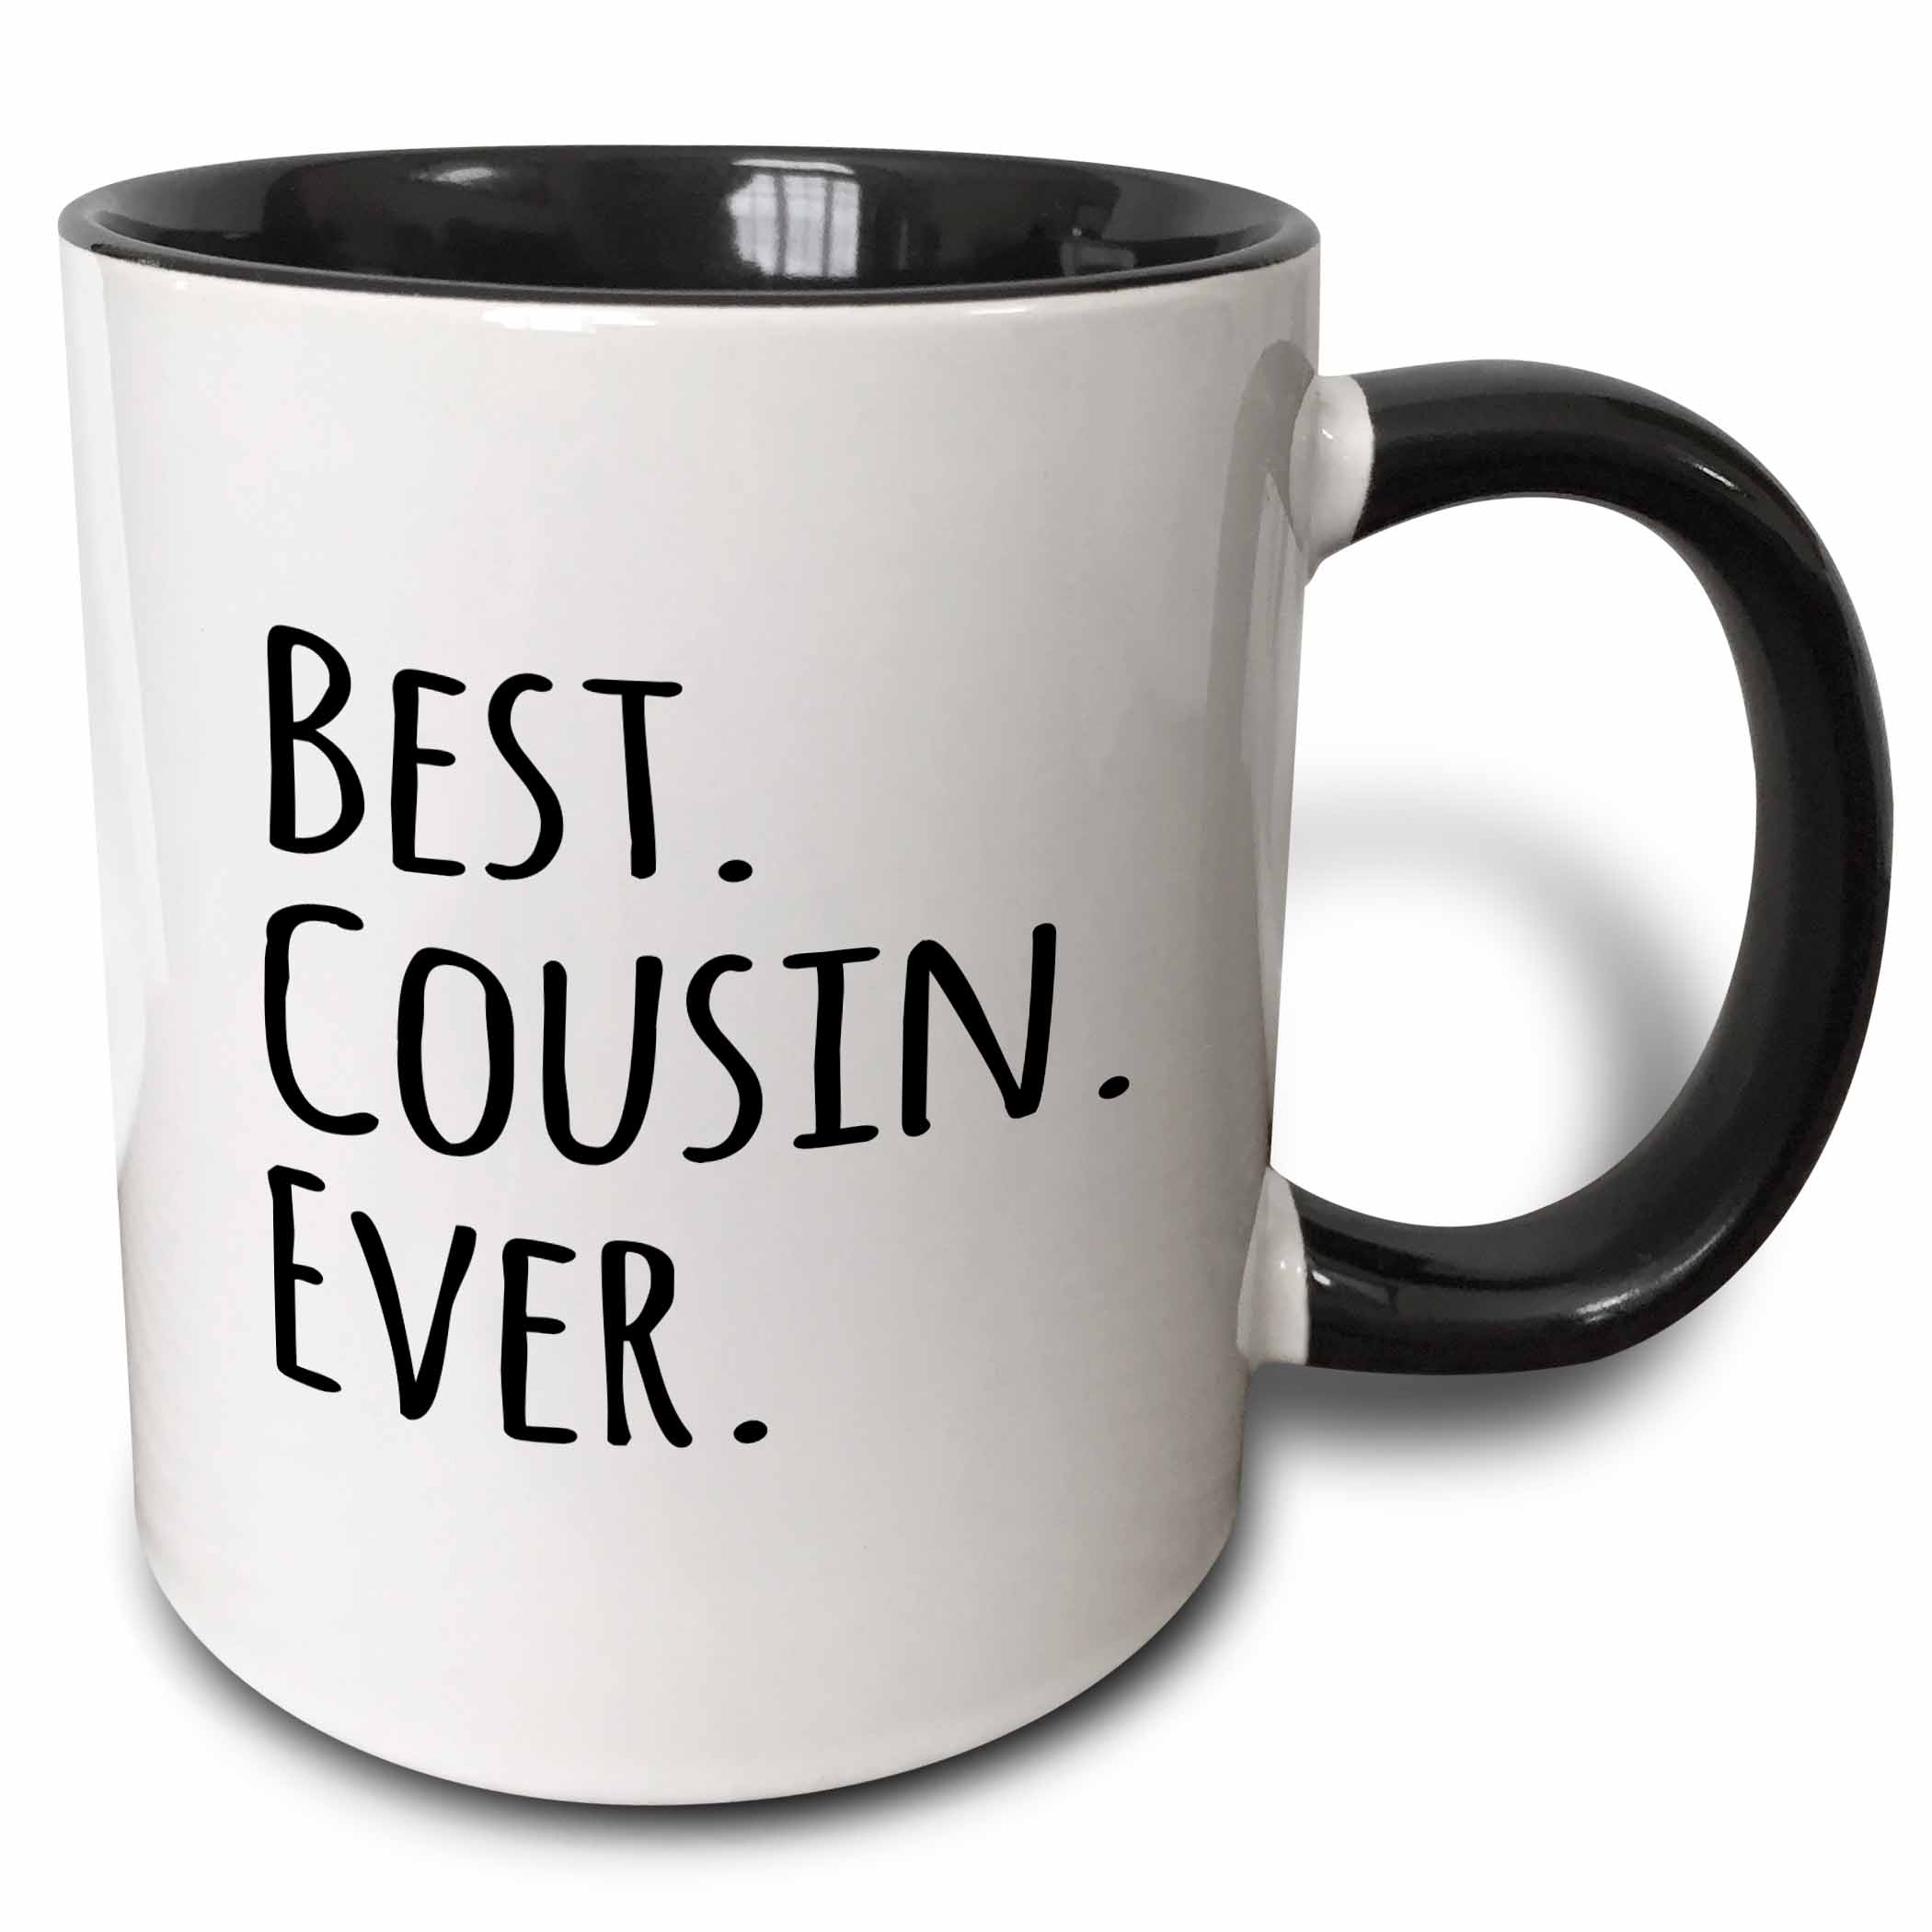 3dRose Best Cousin Ever - Gifts for family and relatives - black text, Two Tone Black Mug, 11oz